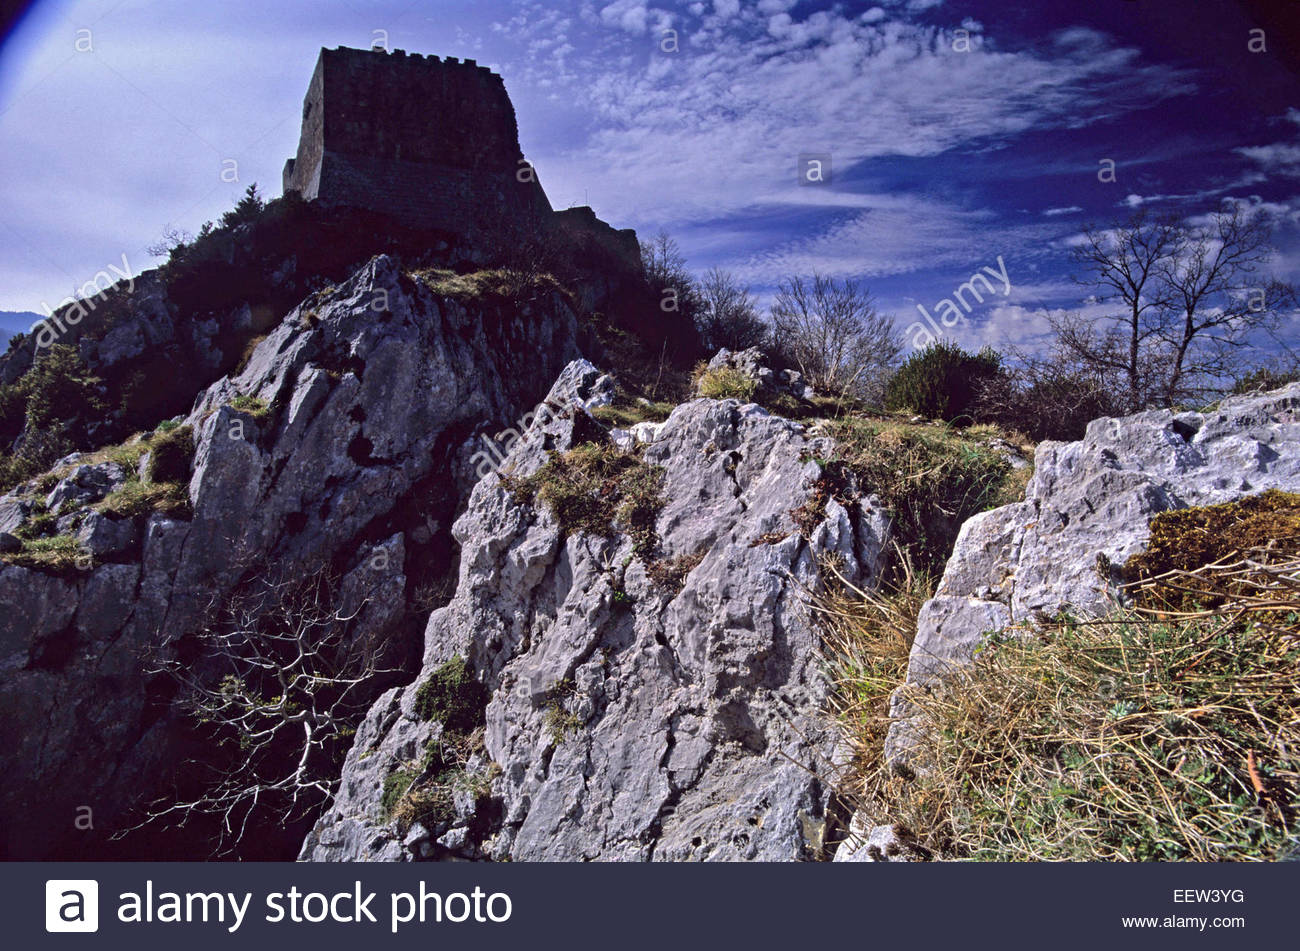 Cathare fortress of Montsegur, Ariege, France. Legend of France Stock Photo